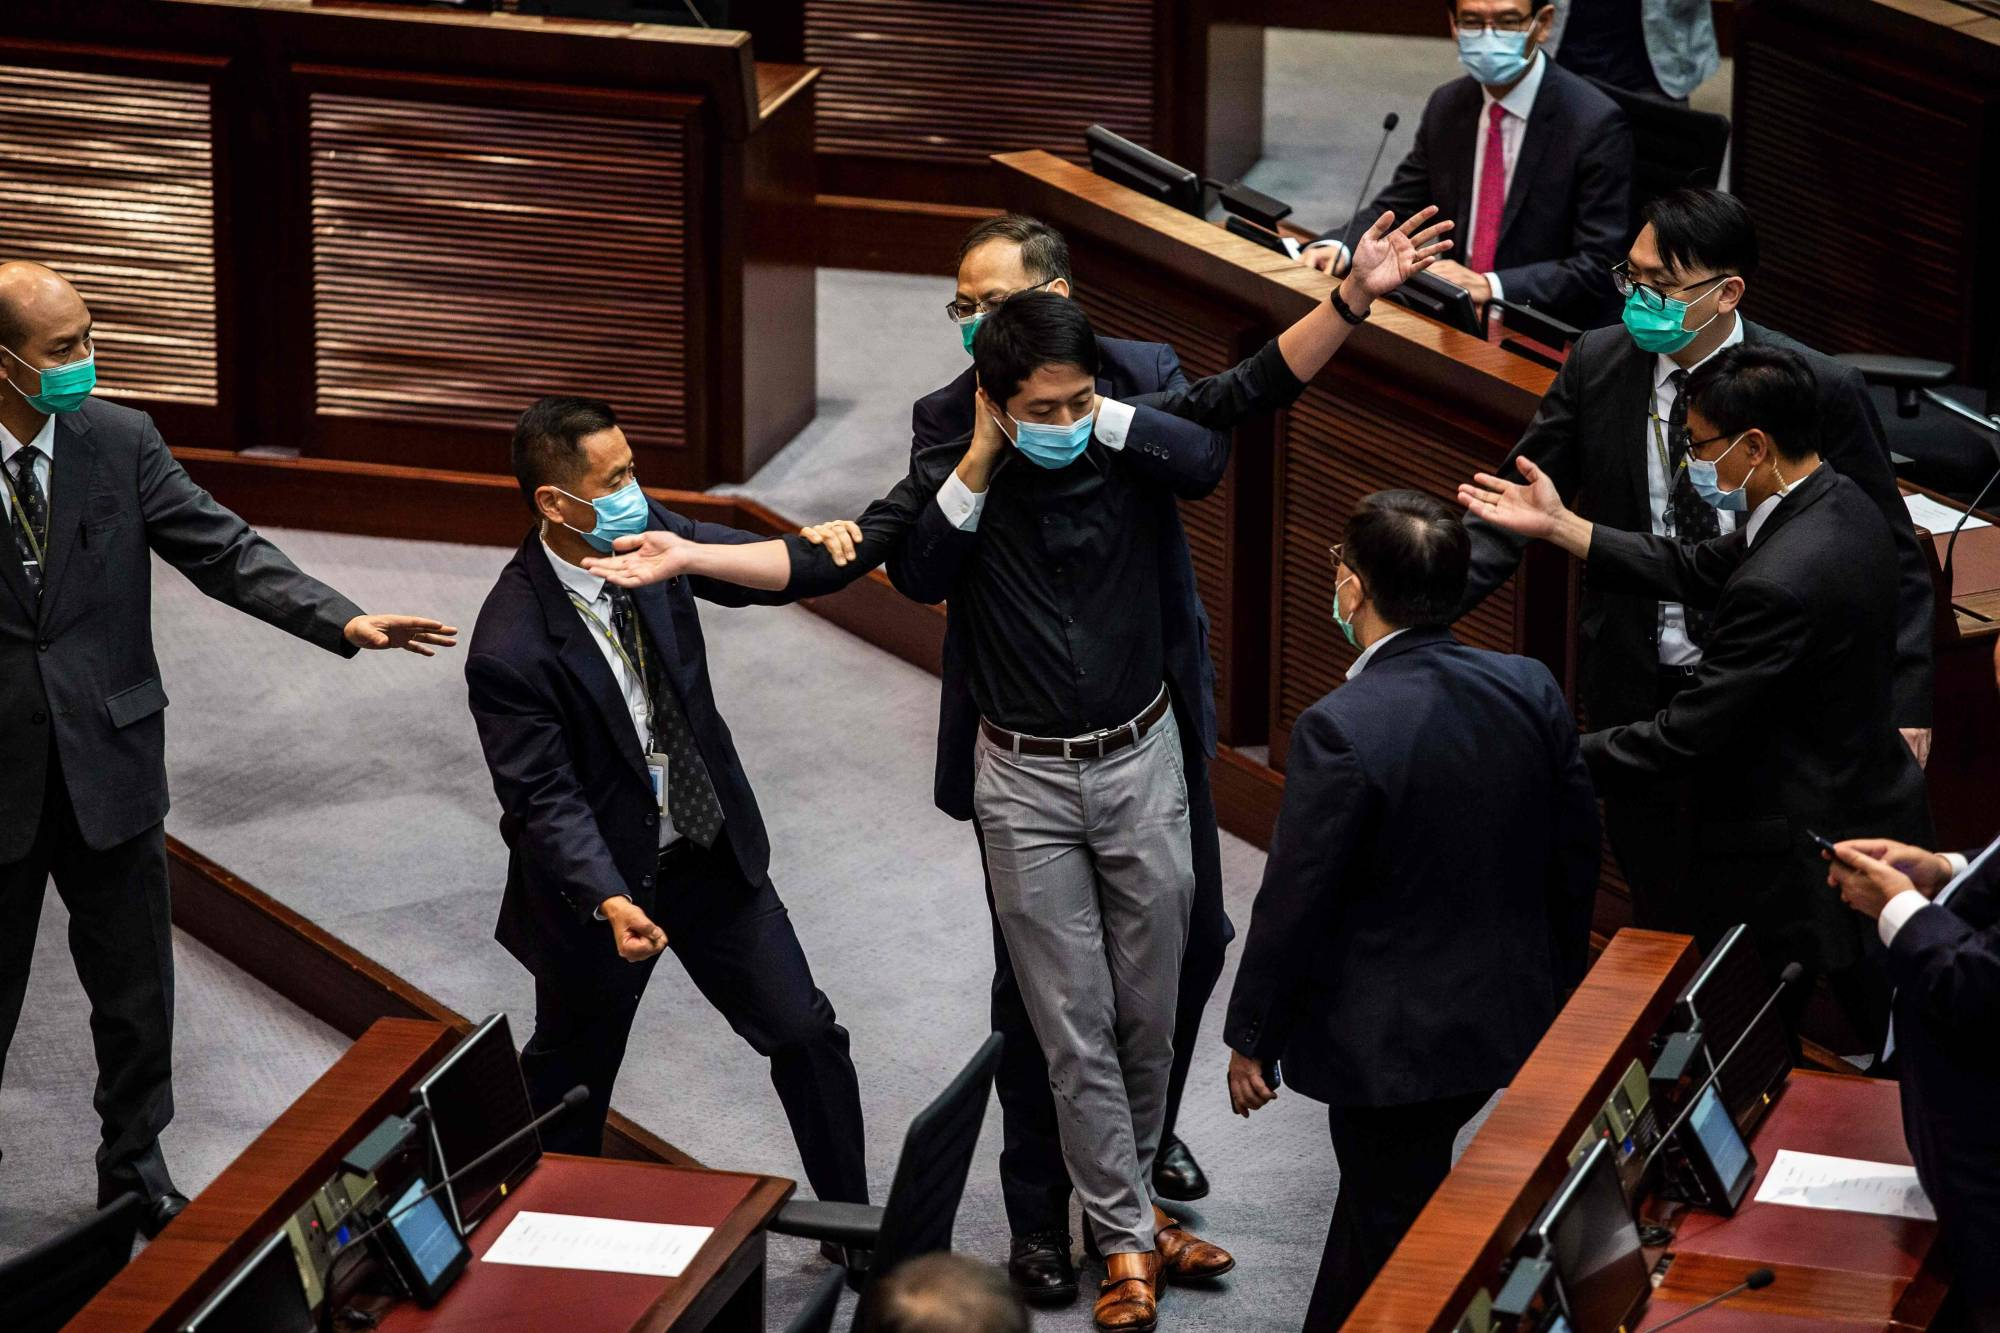 Pro-democracy legislator Ted Hui is removed by security guards after throwing a jar containing a foul-smelling liquid onto the floor during a June Legislative Council debate on a law that bans insulting China's national anthem.    AFP-JIJI